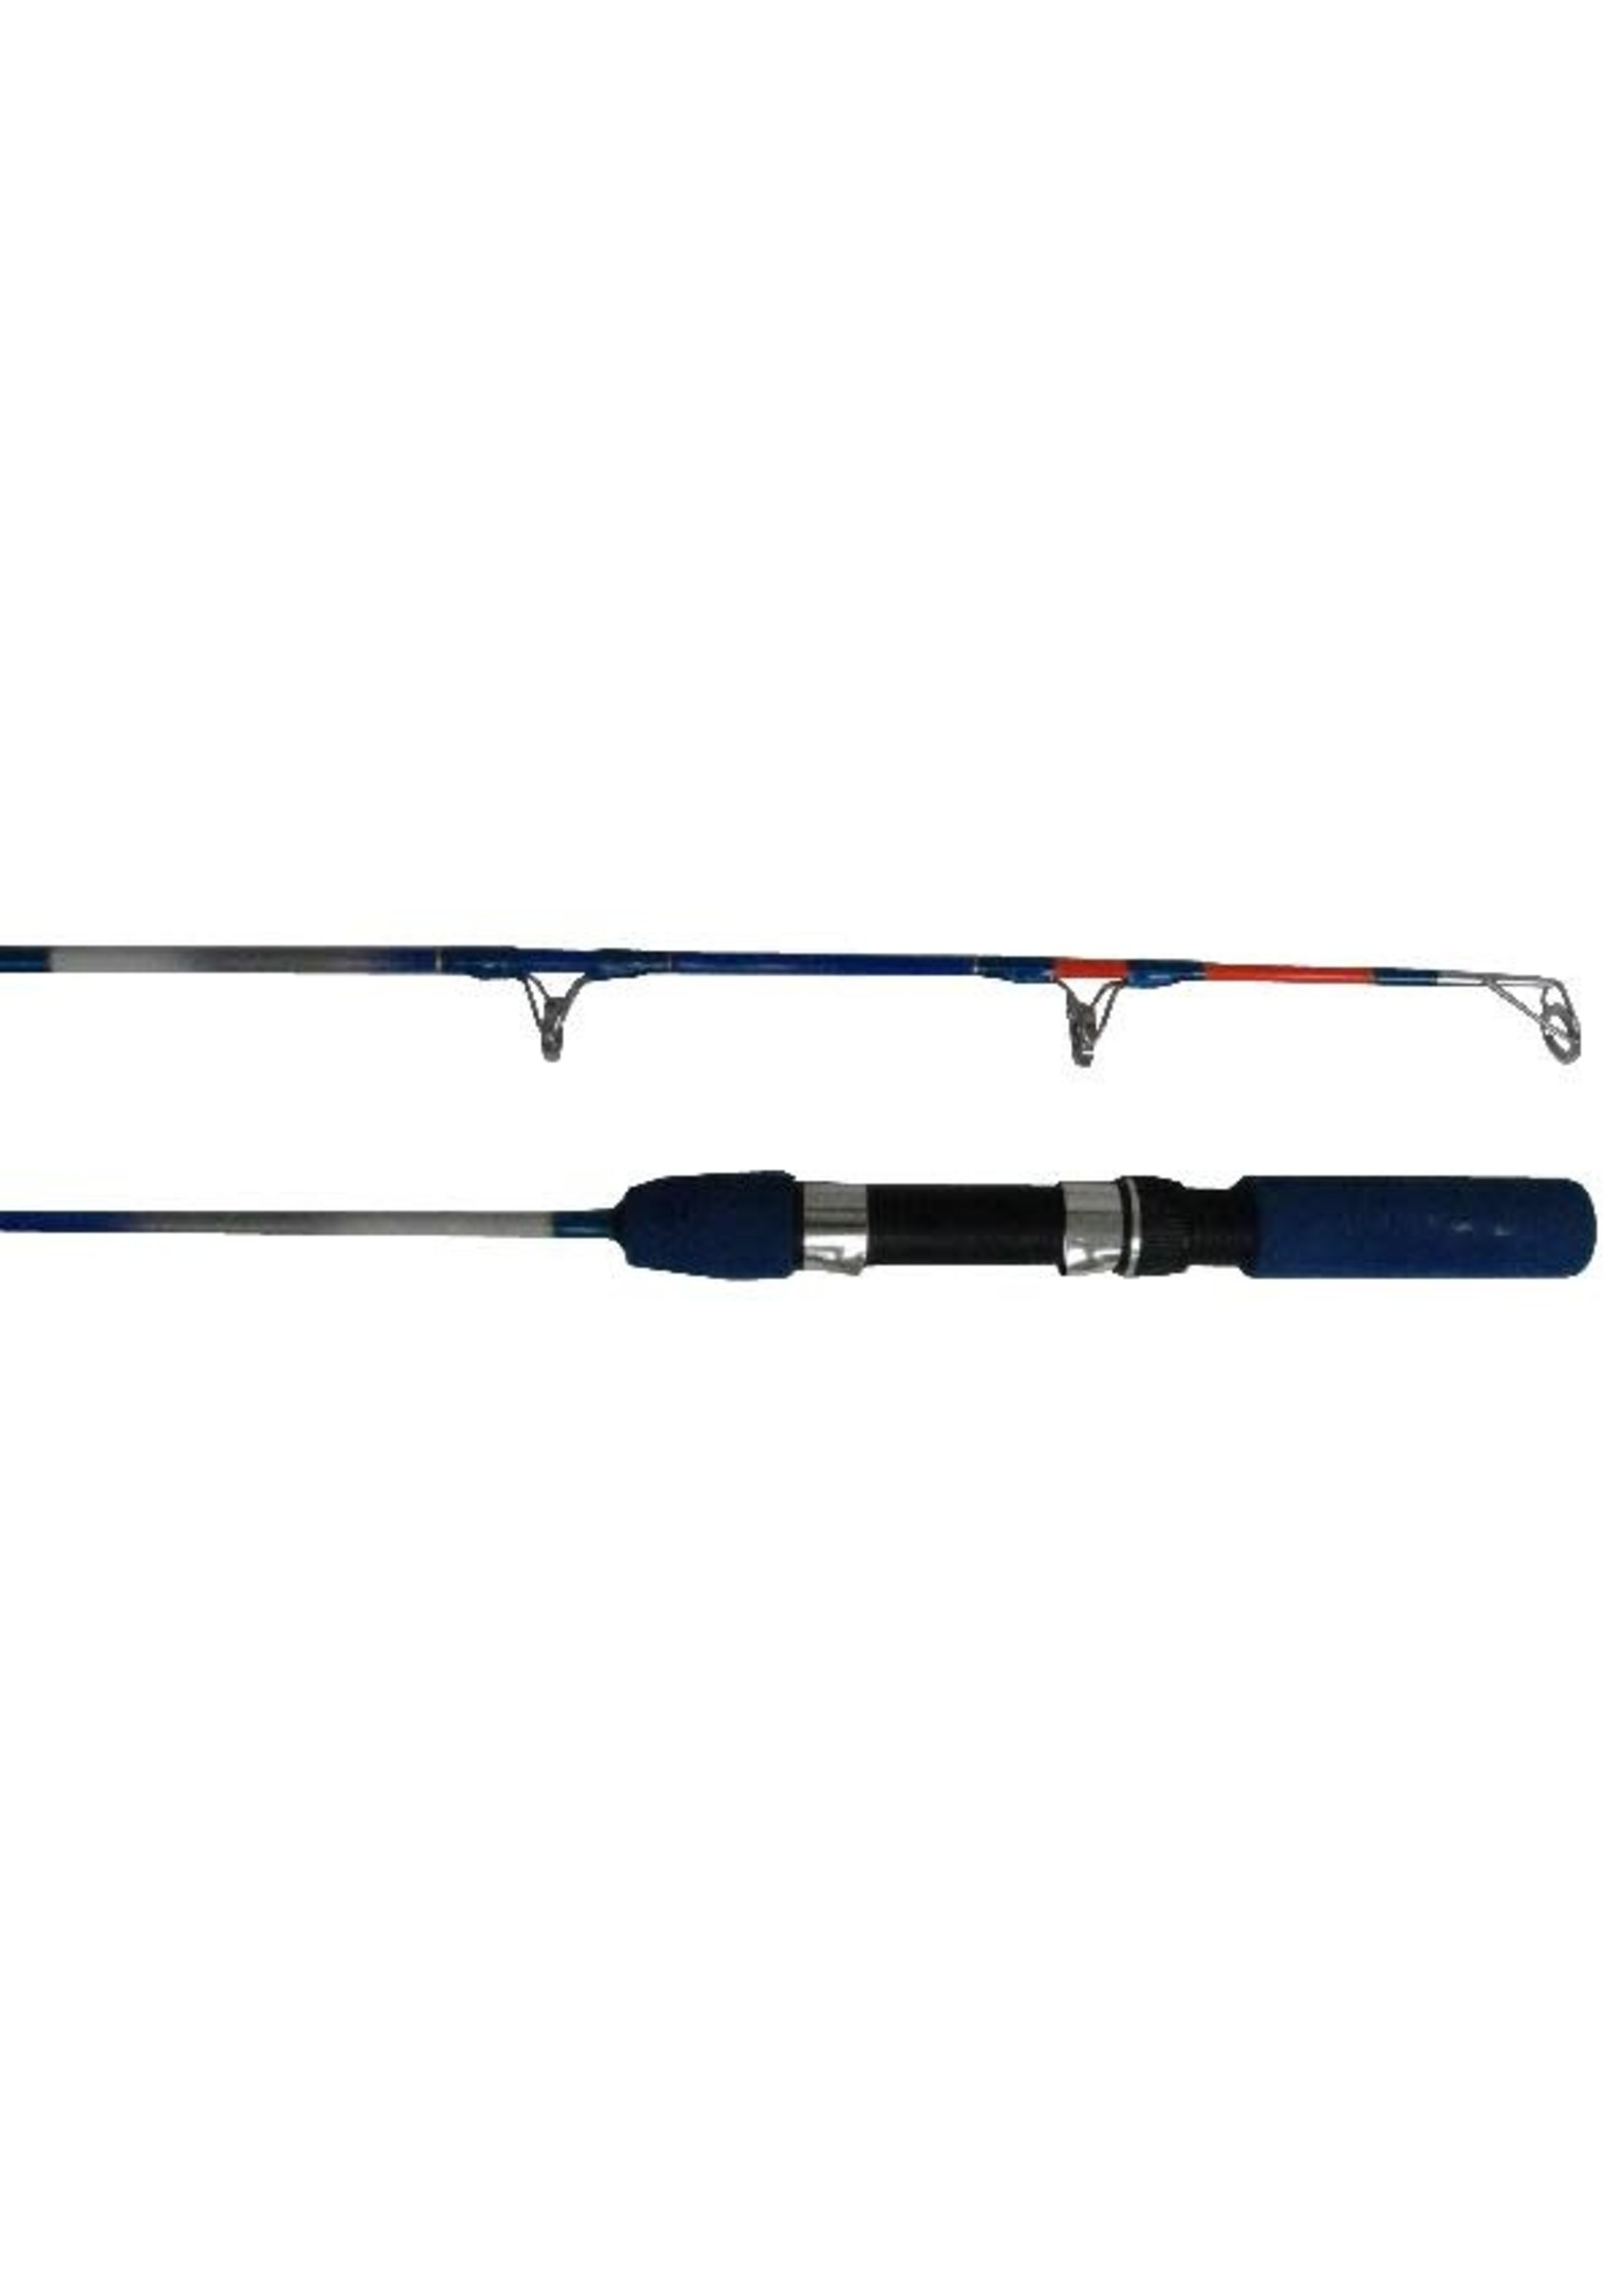 """ICE BLUE TROUT ROD - HEAVY ACTION - 24"""" LONG WITH LARGE 20MM GUIDES"""